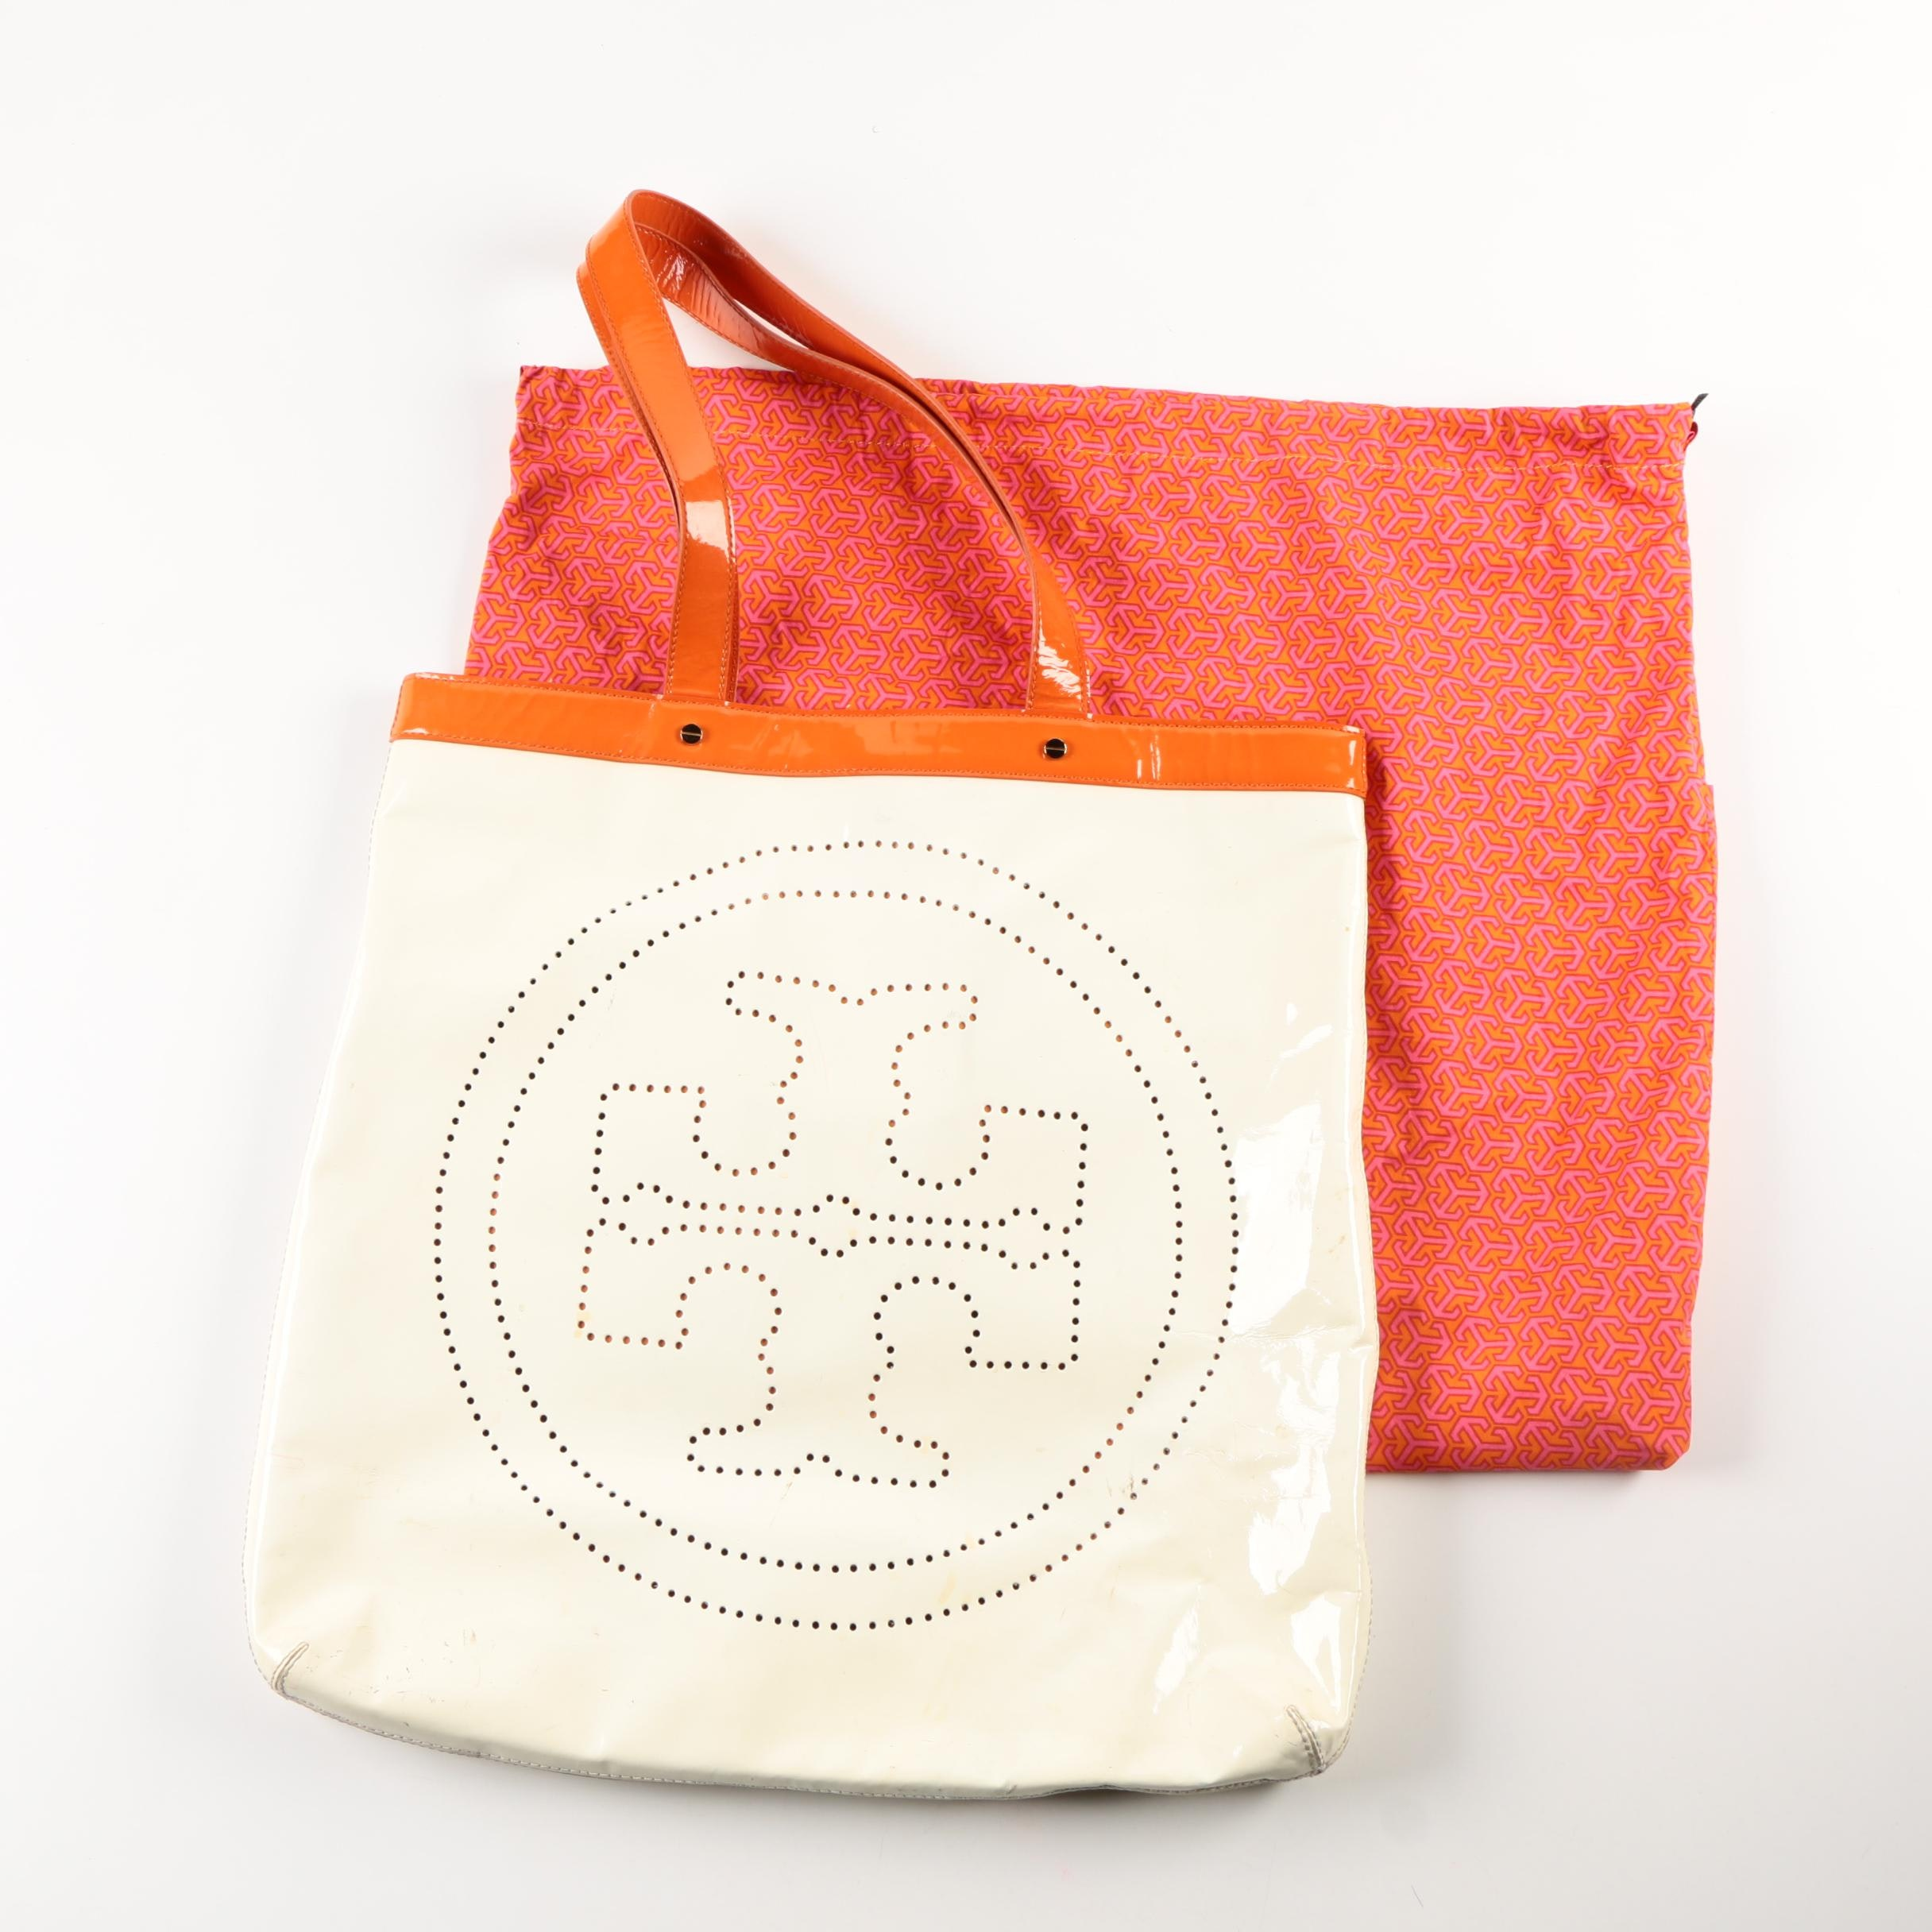 Tory Burch Patent Leather Tote Bag